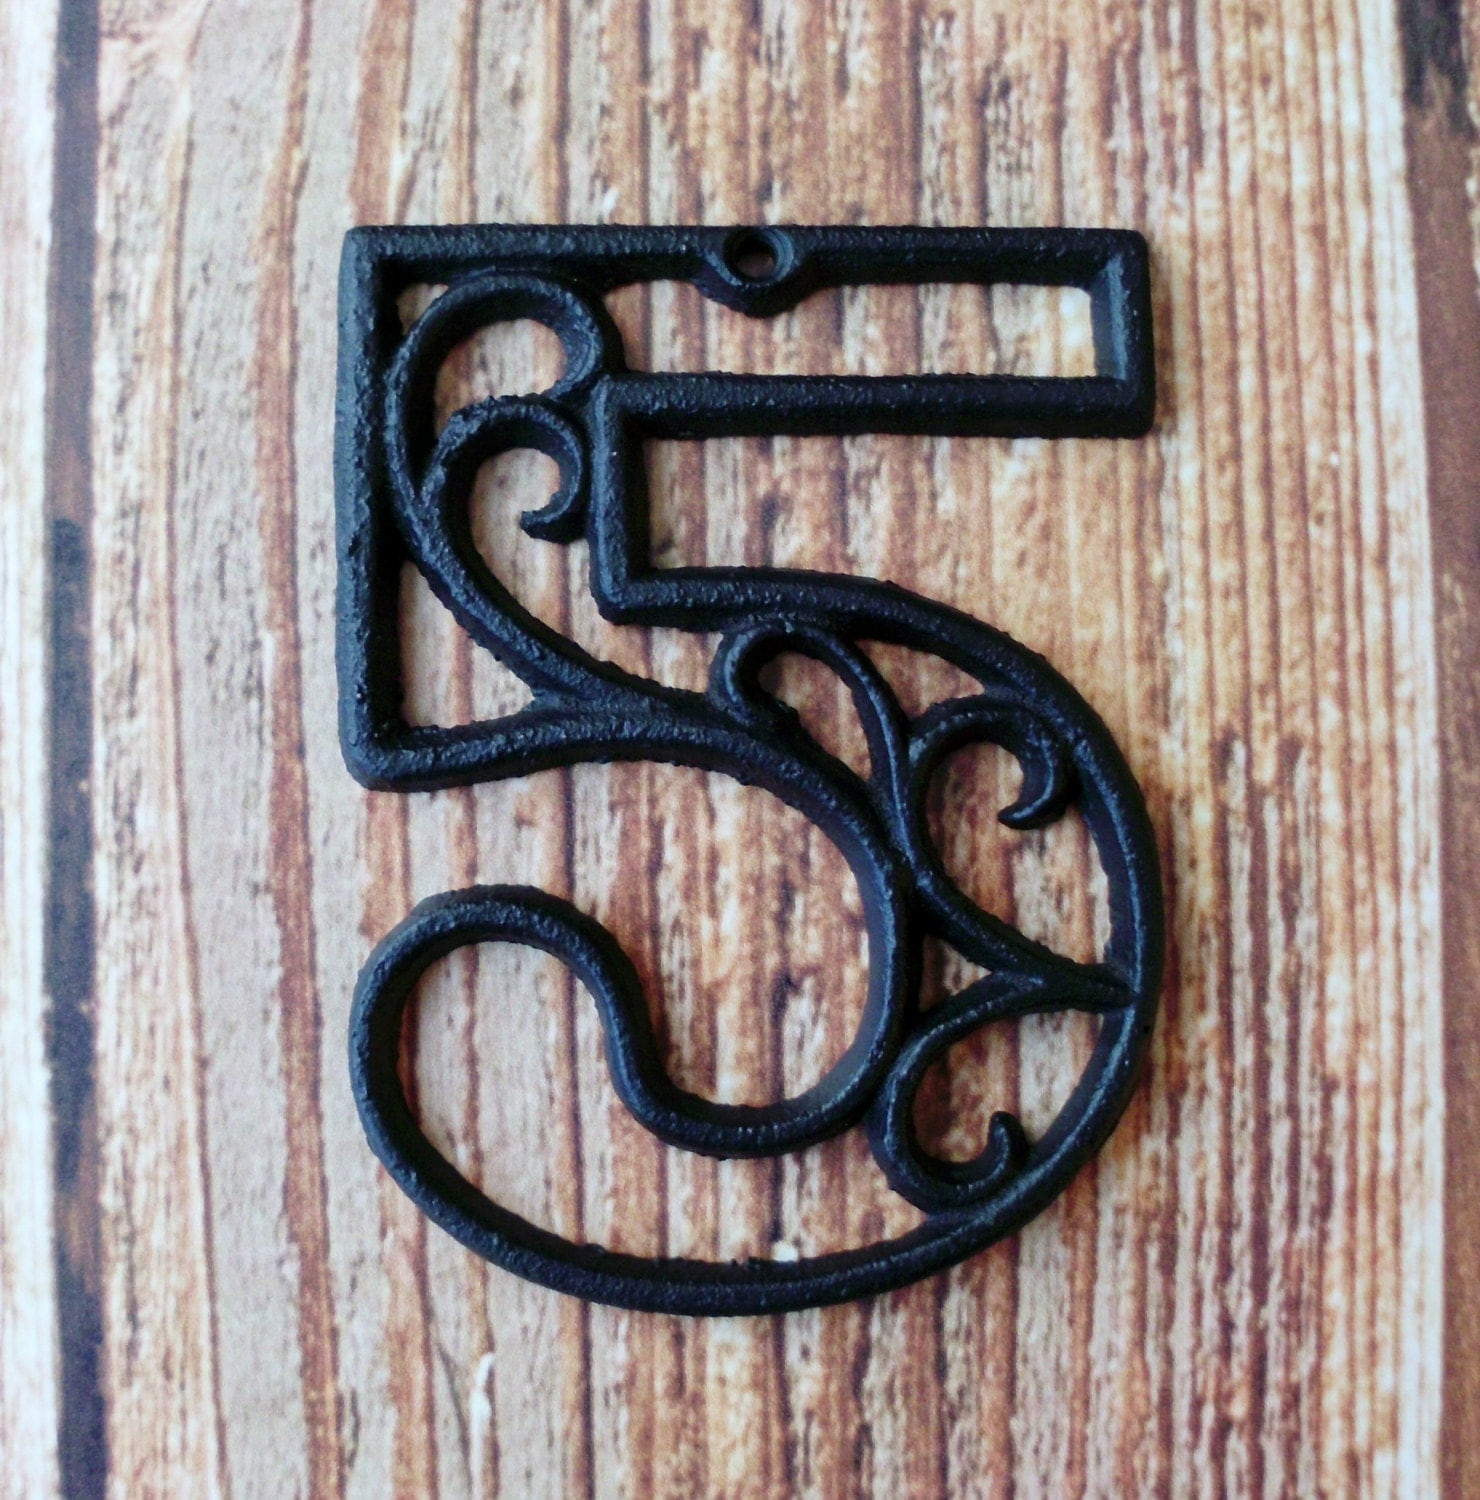 house number five cast iron wall hangers decorative victorian. Black Bedroom Furniture Sets. Home Design Ideas